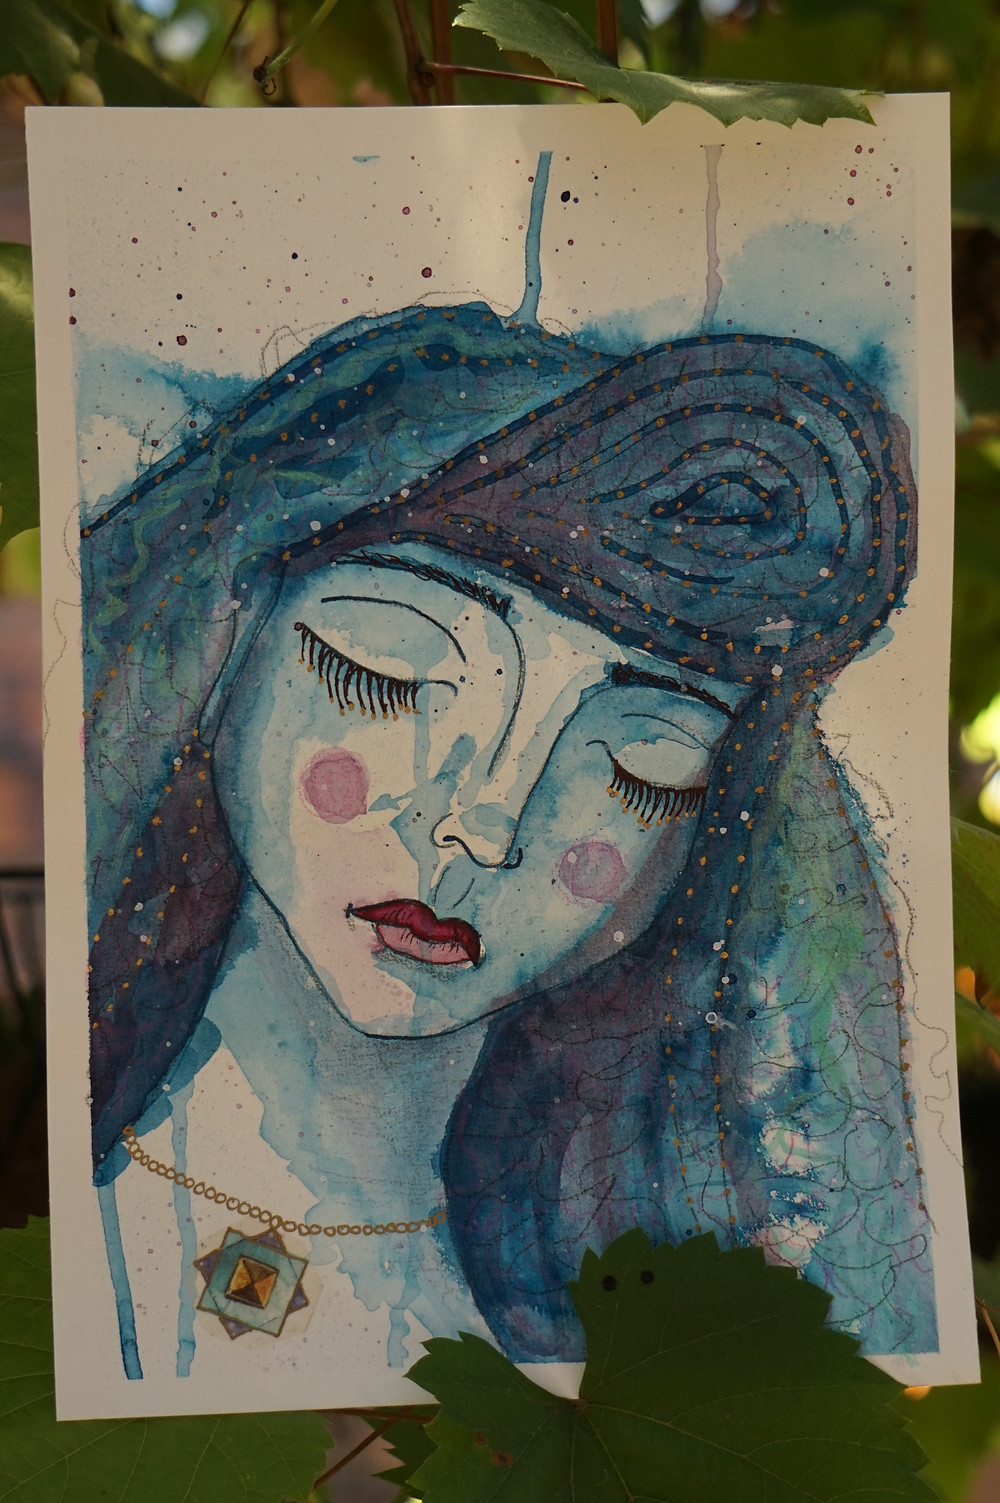 ink painting of a blue woman dreaming